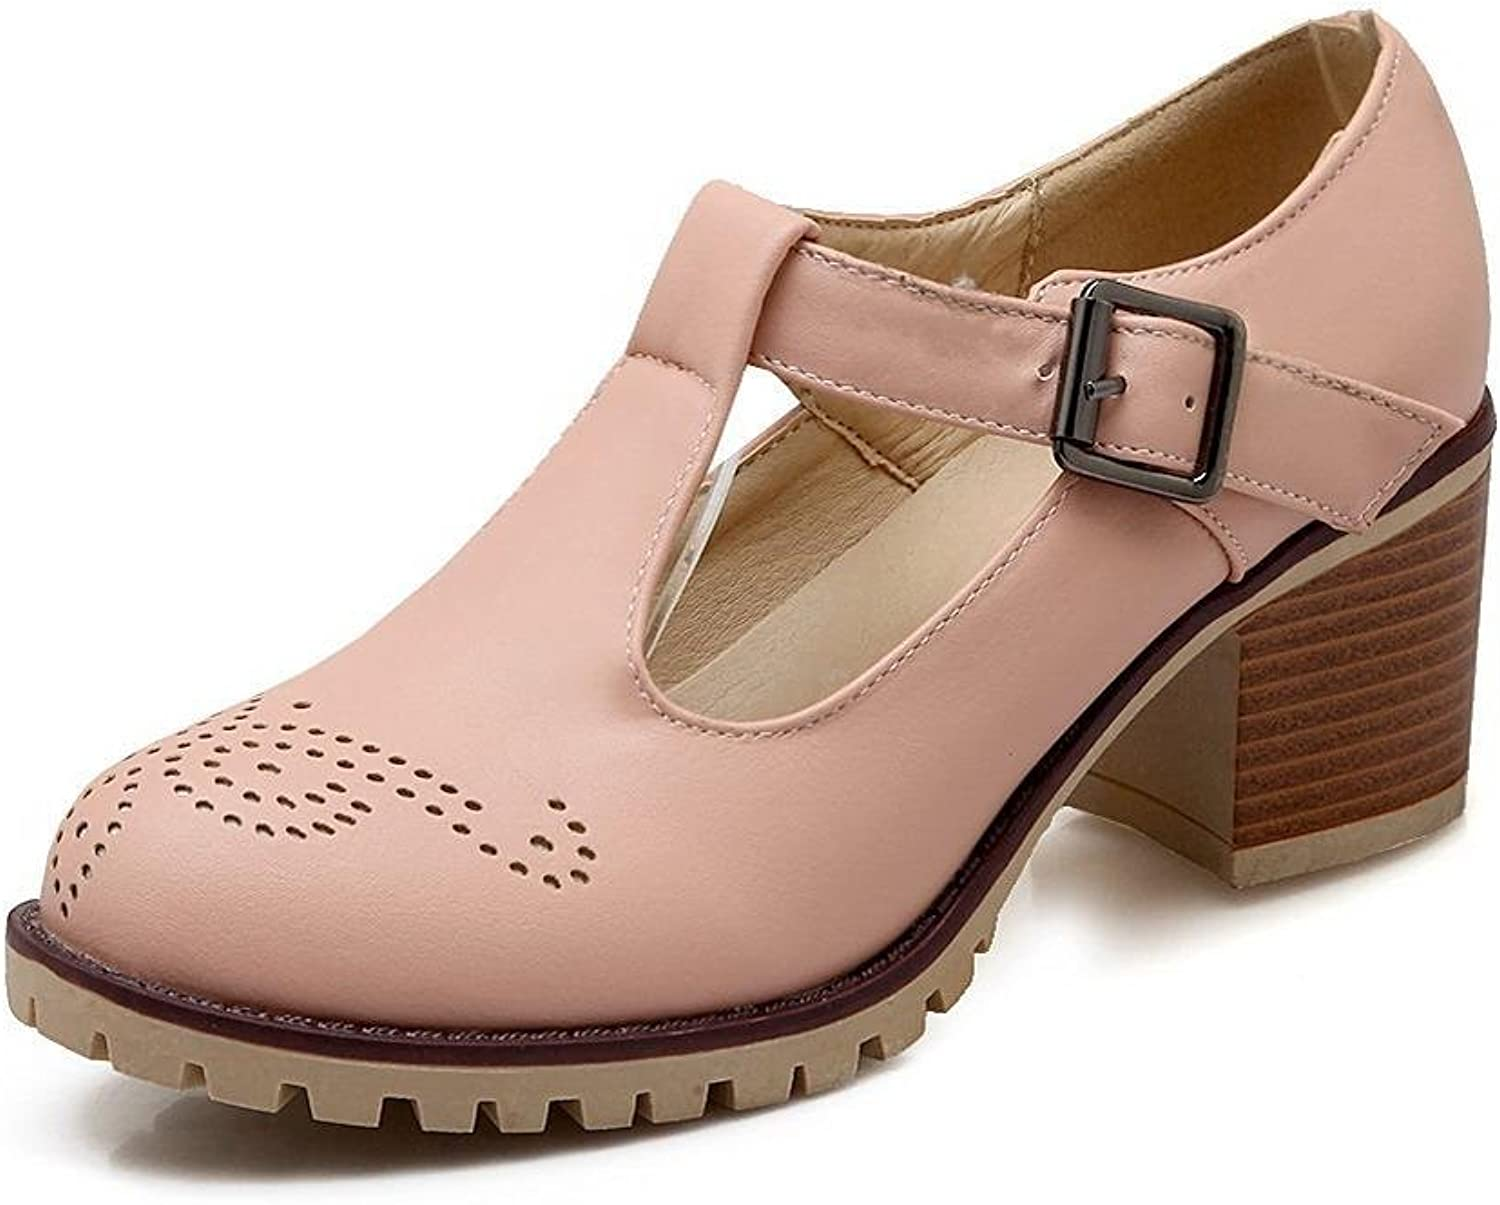 WeenFashion Women's Soft Material Buckle Round Closed Toe Kitten-Heels Solid Pumps-shoes